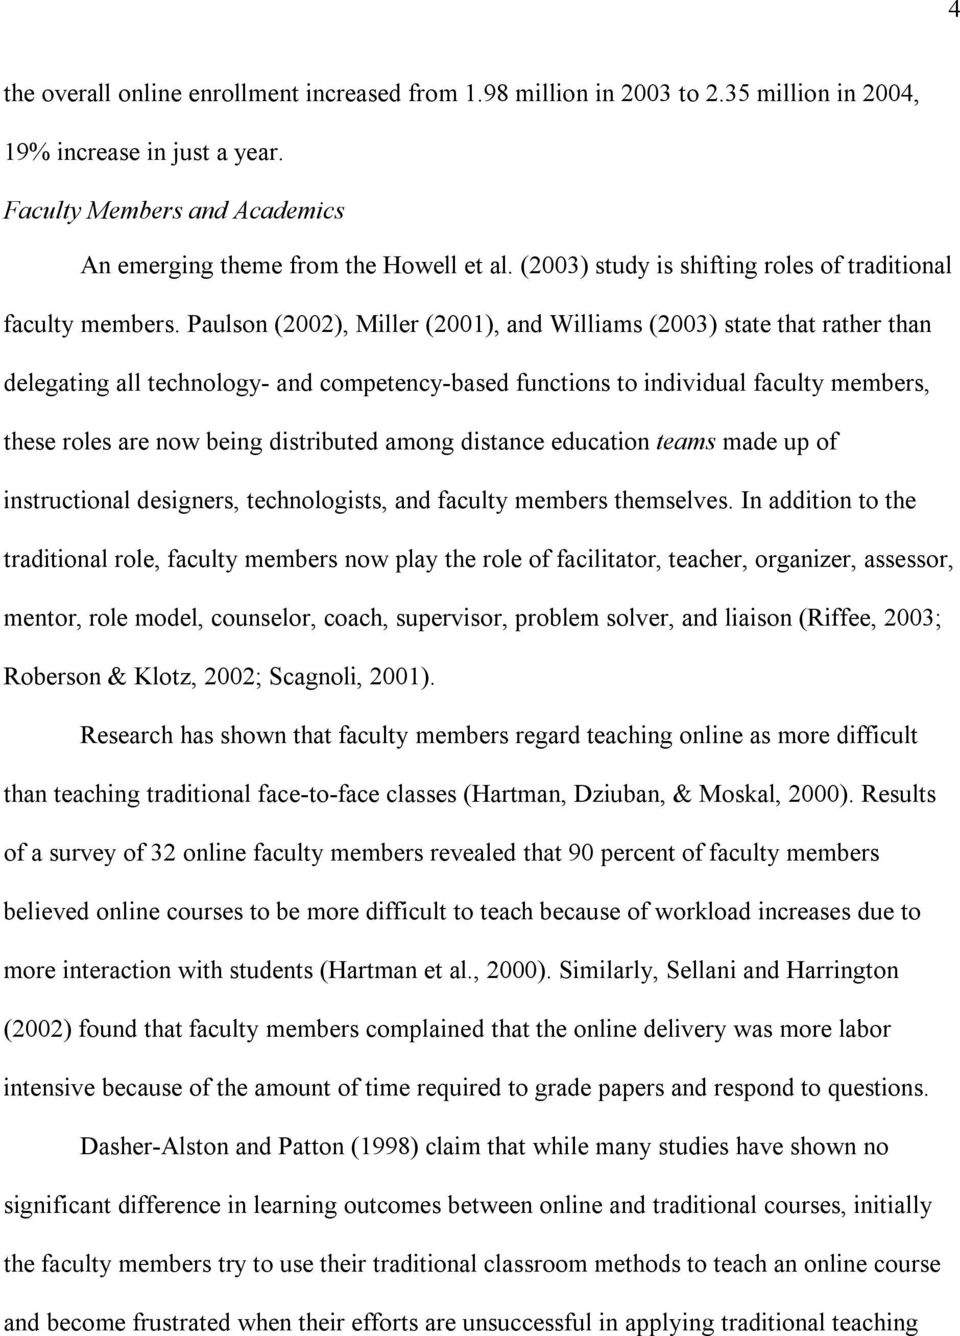 Paulson (2002), Miller (2001), and Williams (2003) state that rather than delegating all technology and competency based functions to individual faculty members, these roles are now being distributed